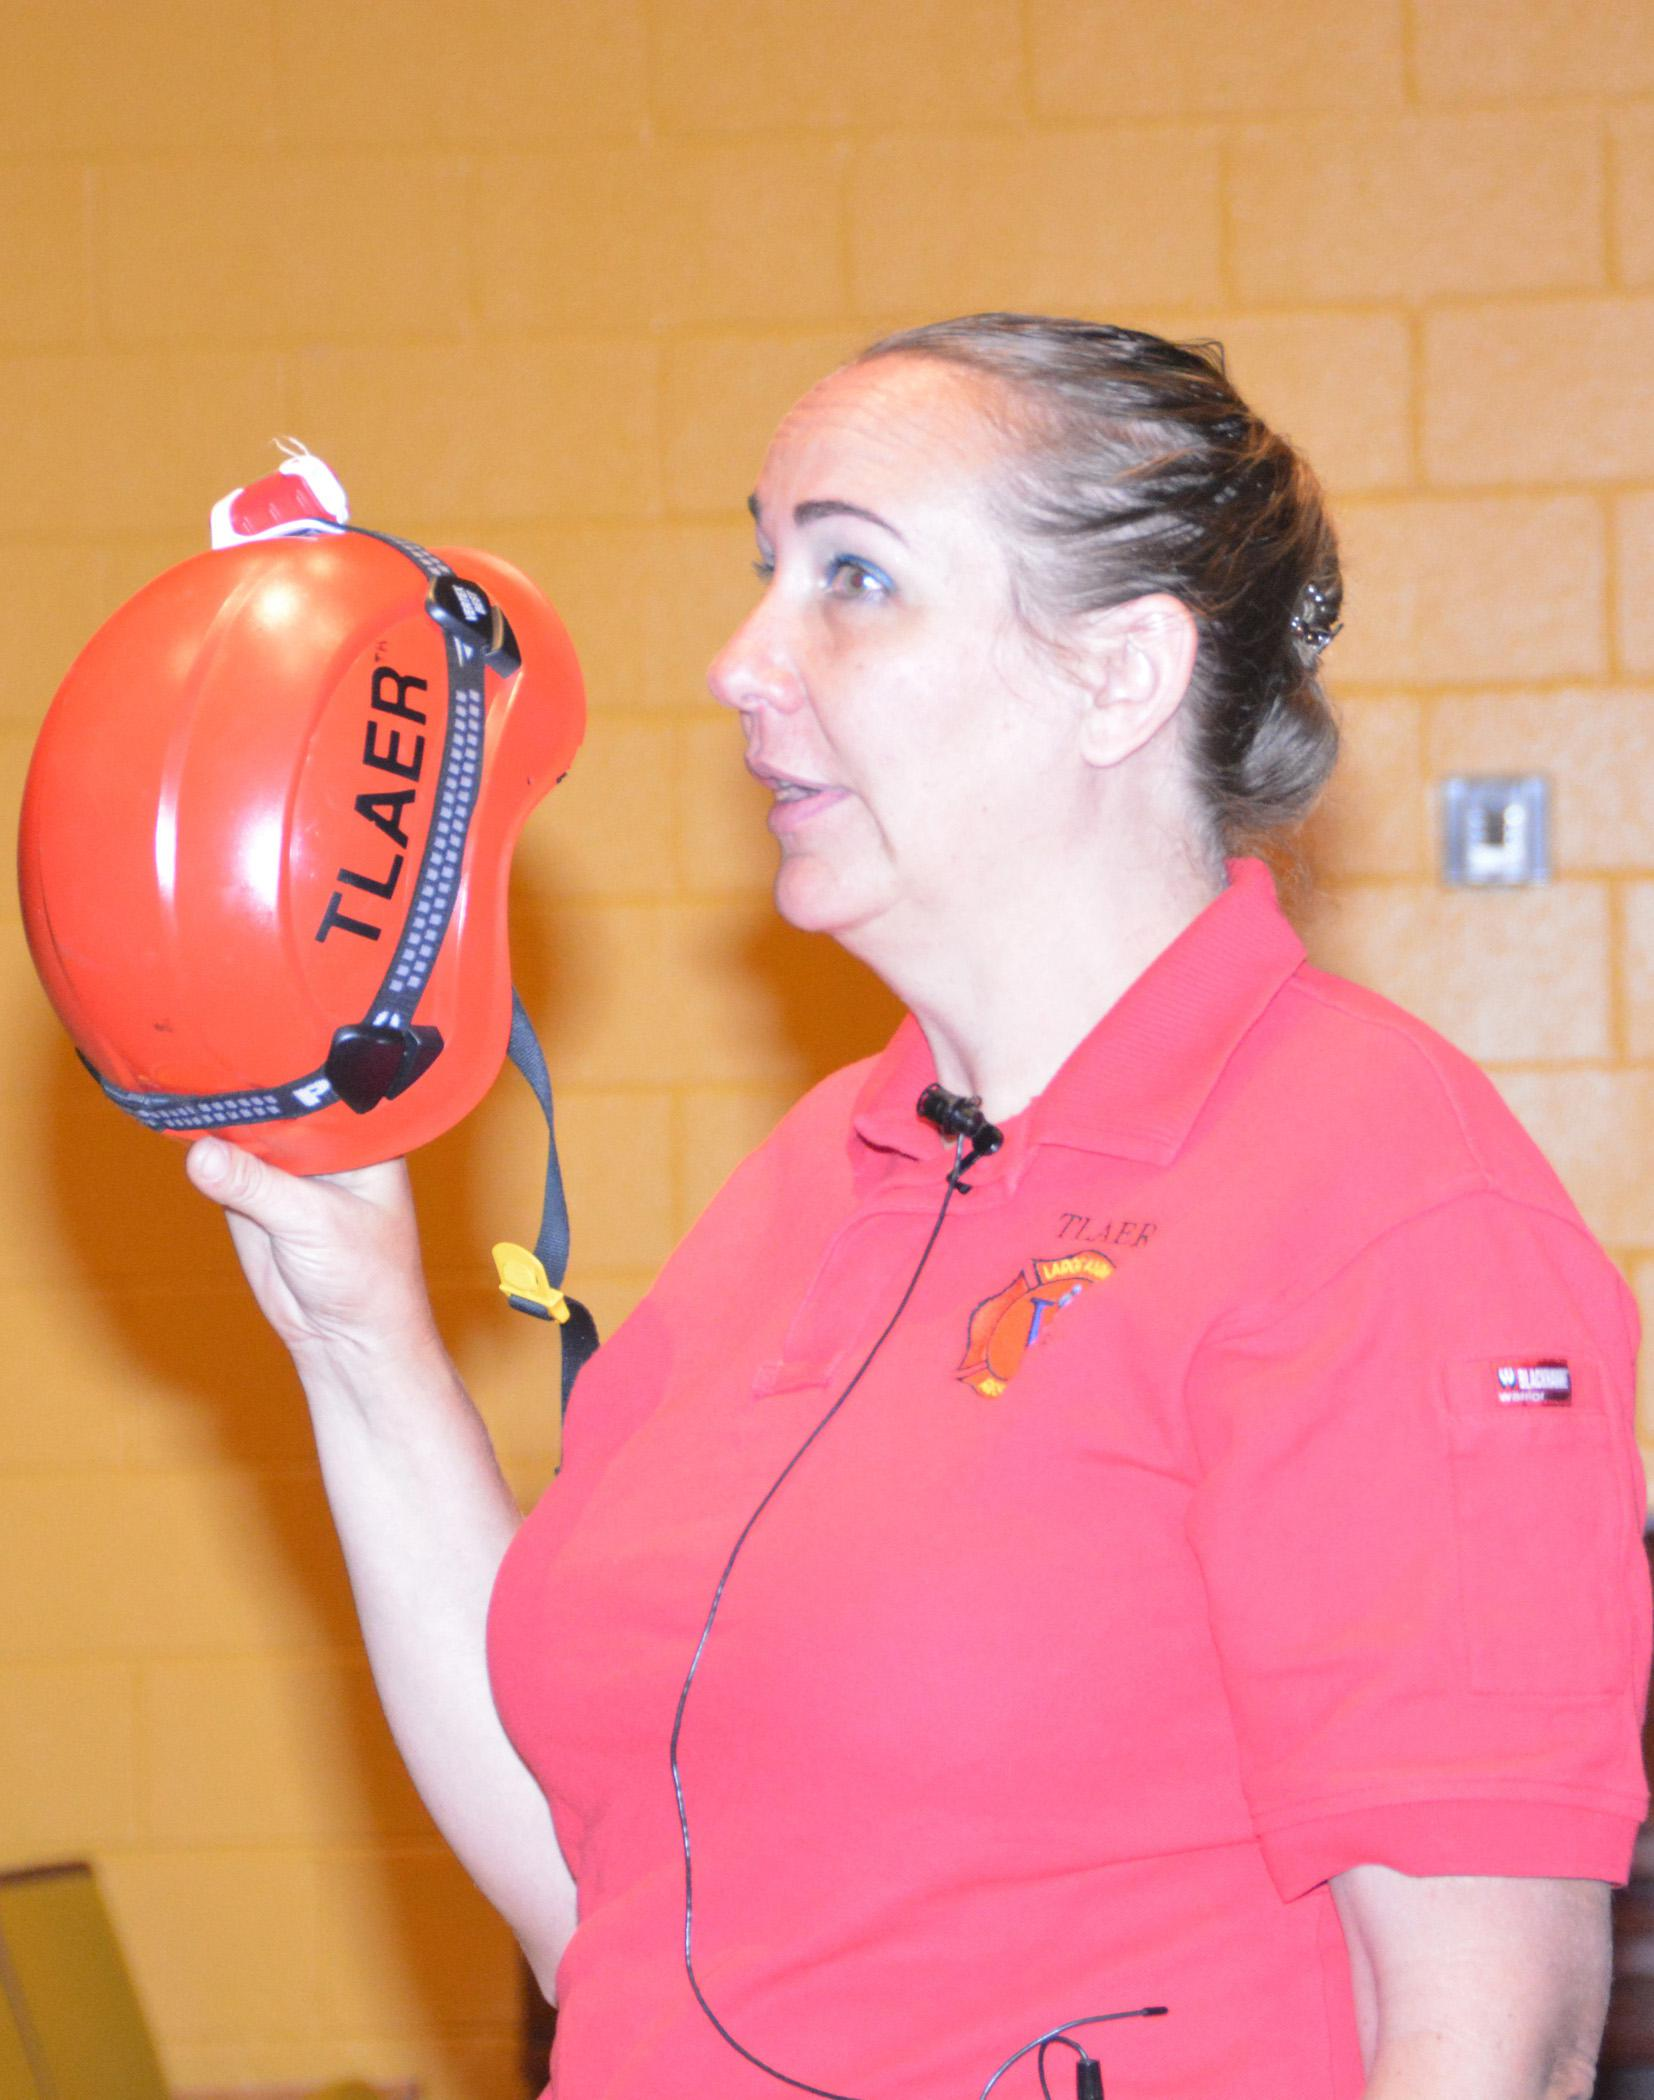 Dr. Rebecca Gimenez, an instructor for the Technical Large Animal Emergency Response course at Mississippi State University on March 29, 2014, explains that head protection is essential when people are helping large, distressed animals. (Photo by MSU Ag Communications/Linda Breazeale)